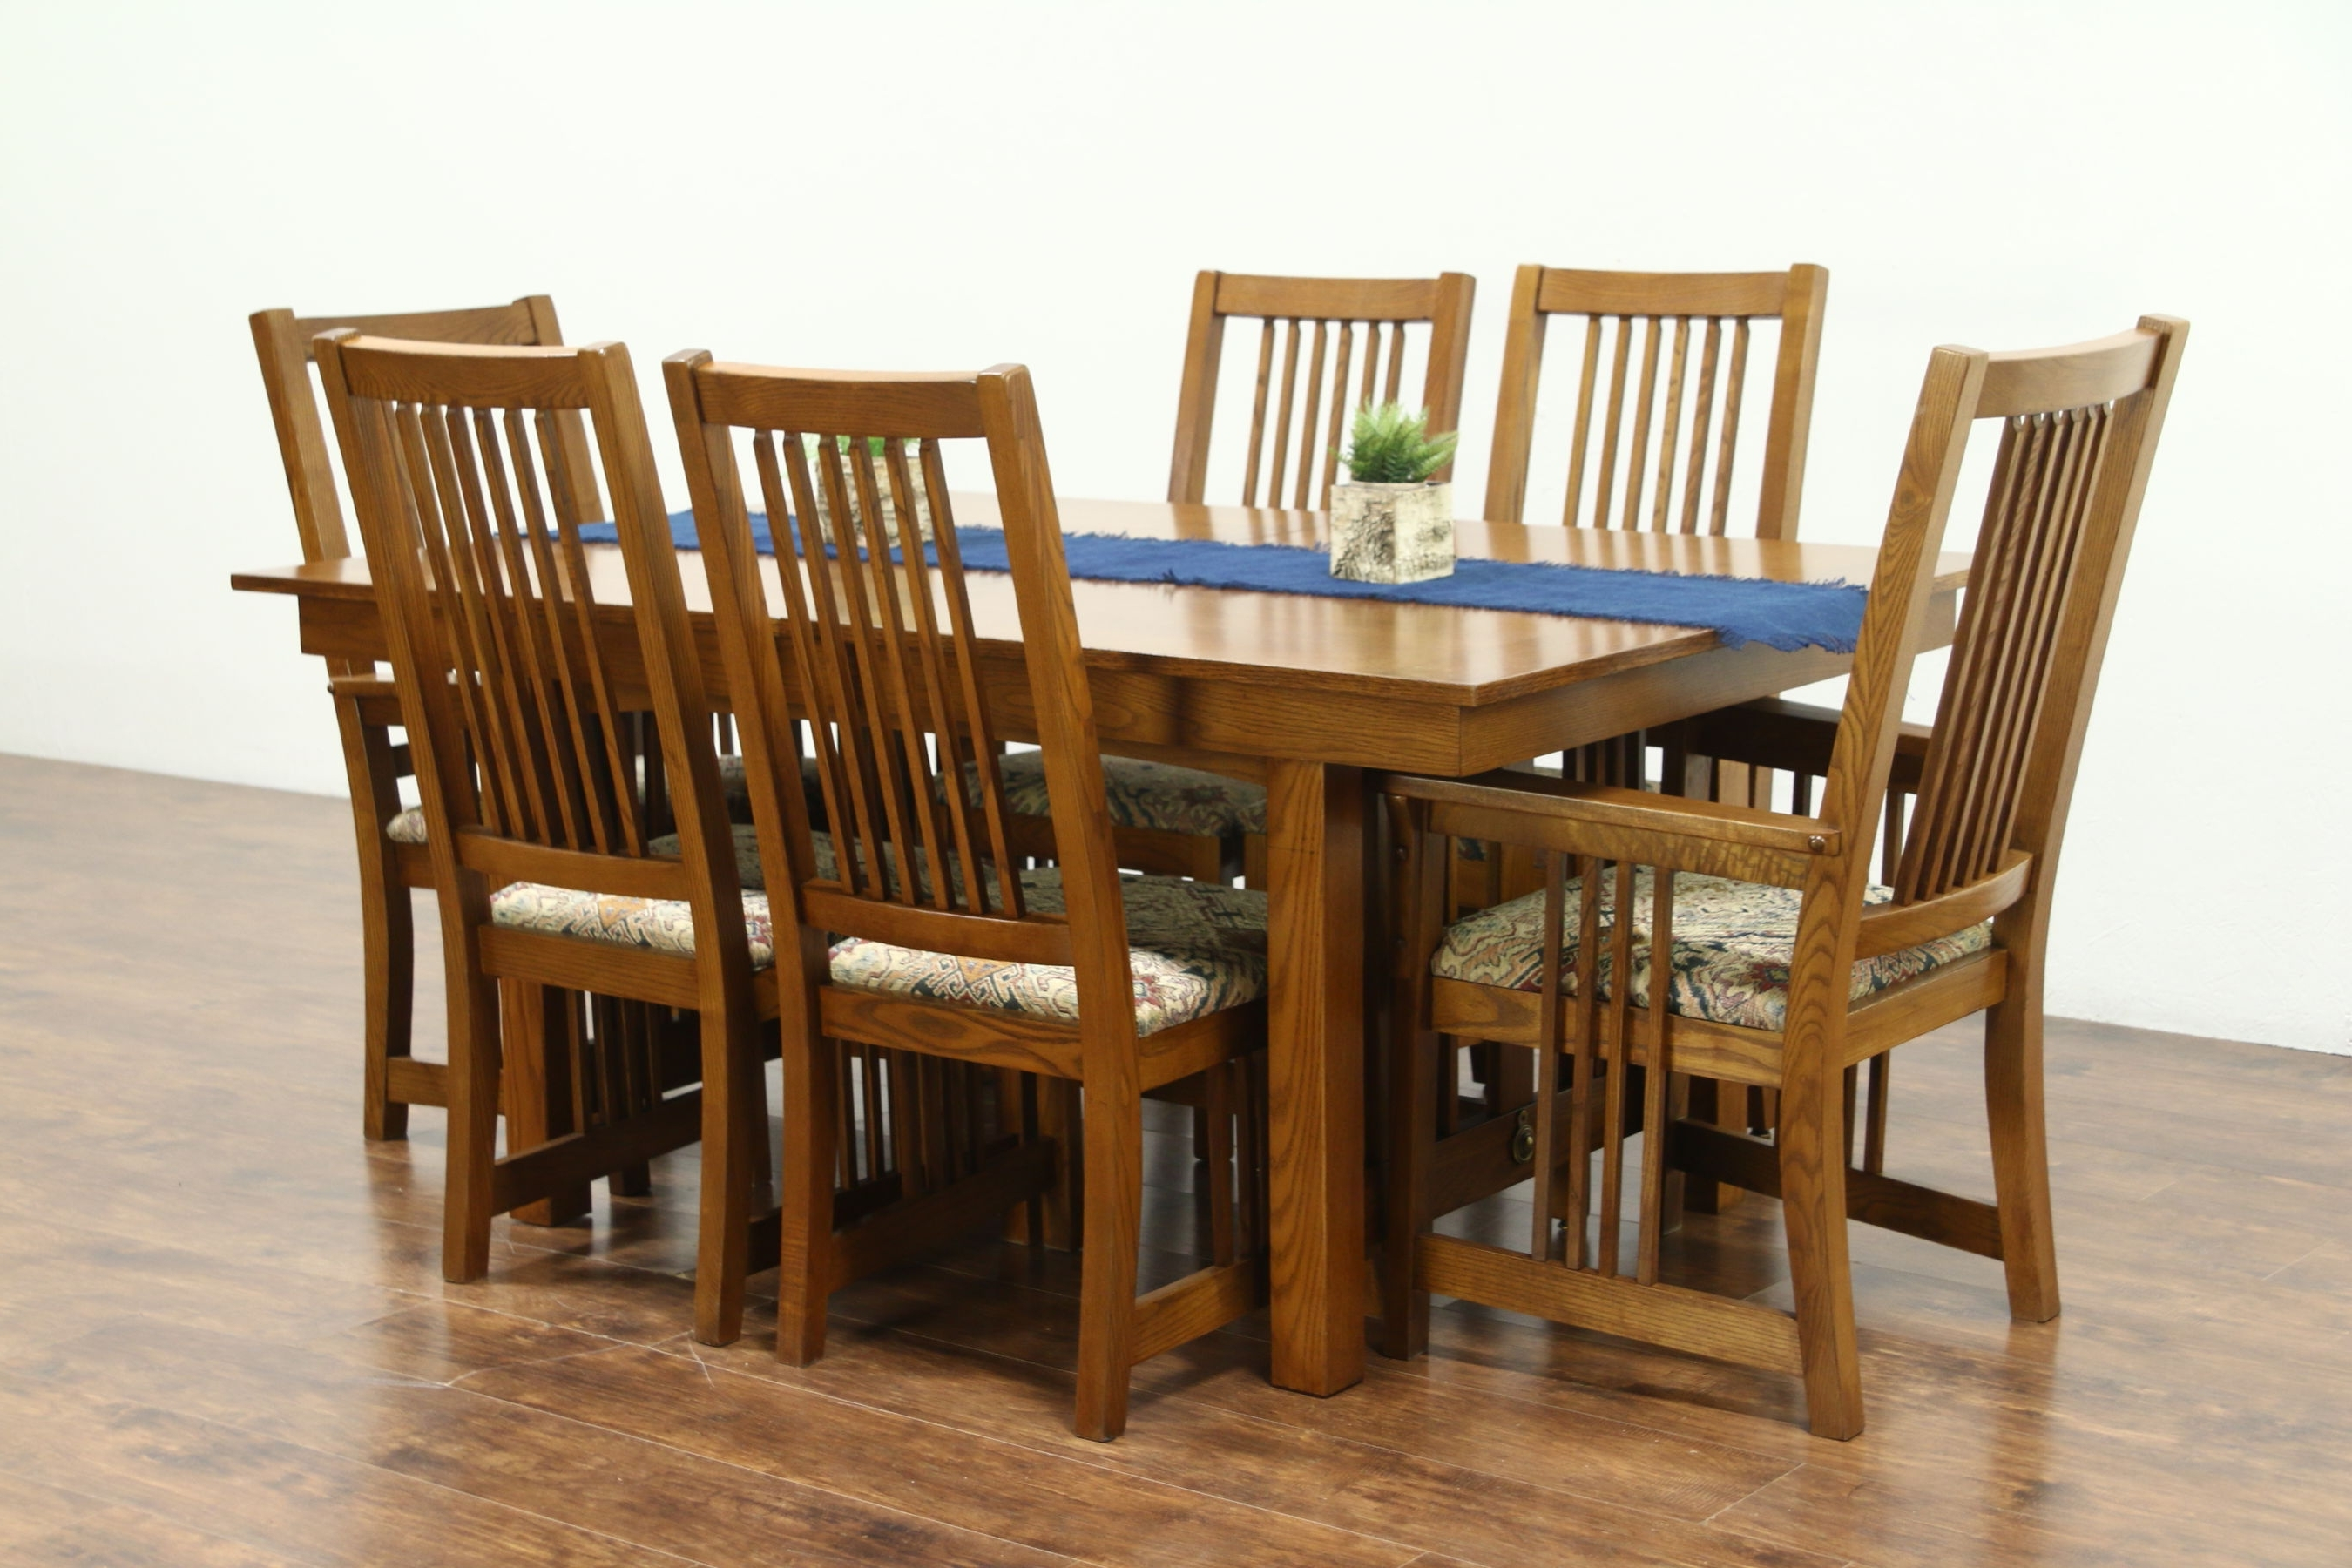 Sold – Prairie Or Craftsman Vintage Oak Dining Set, Table, 2 Leaves In Favorite Oak Dining Set 6 Chairs (View 22 of 25)